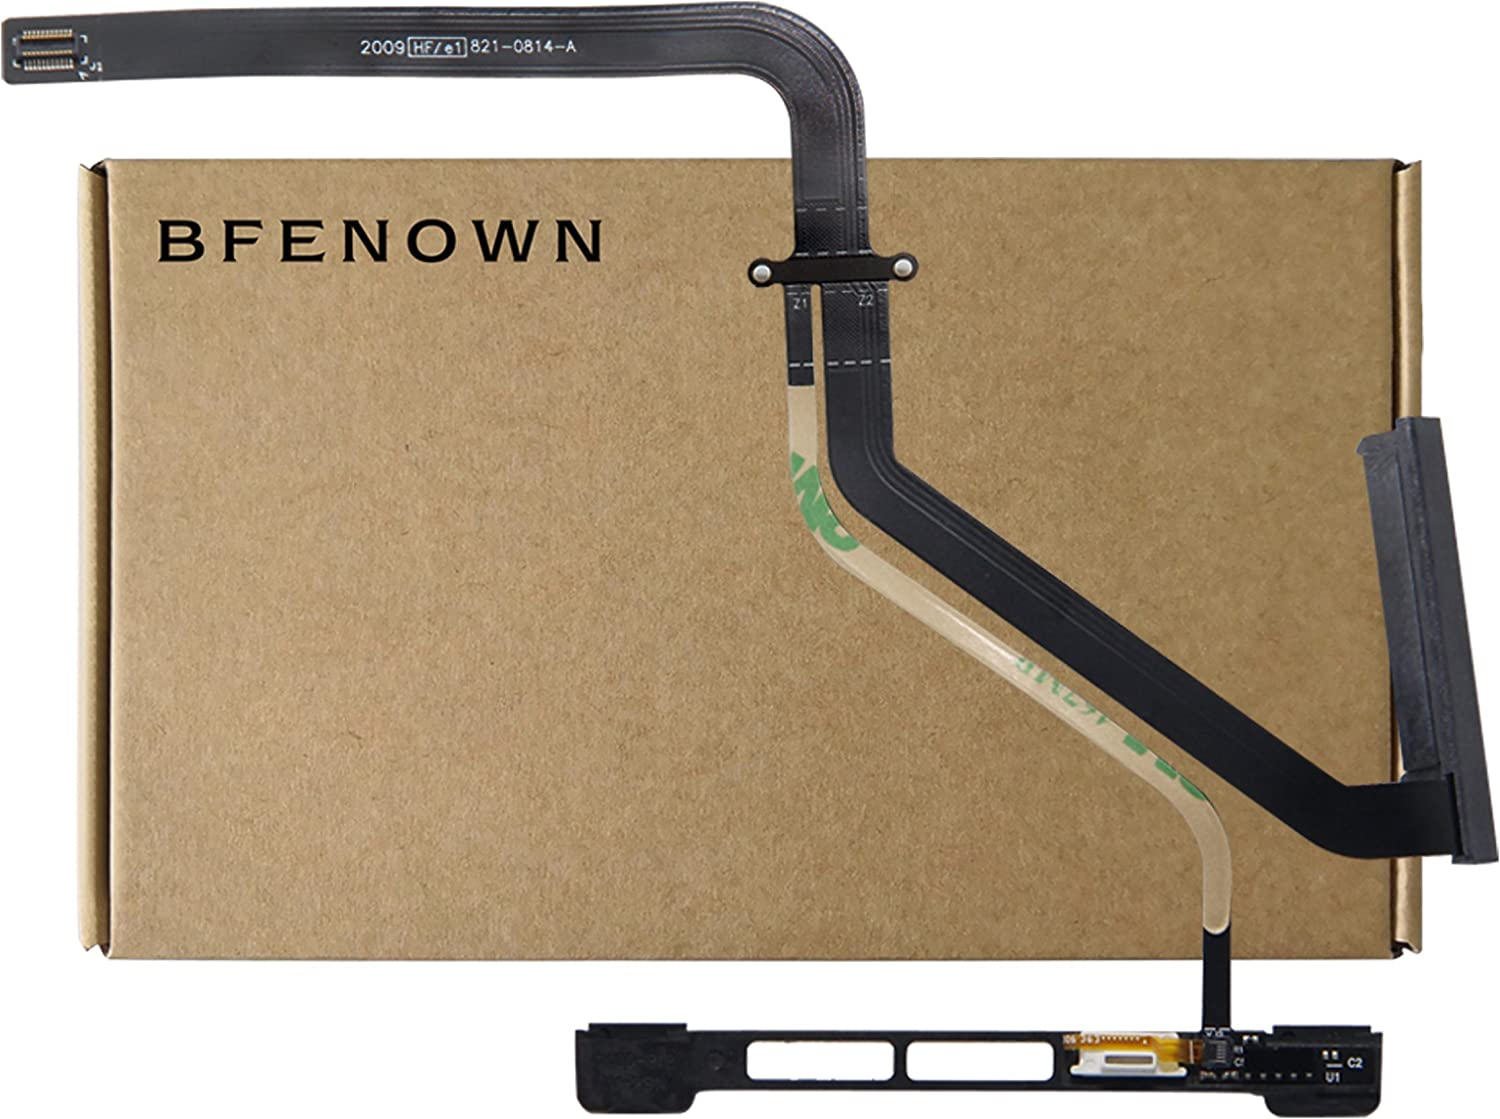 Bfenown Replacement HDD SSD SATA Hard Drive Connector Cable w/IR Sensor for MacBook Pro 13